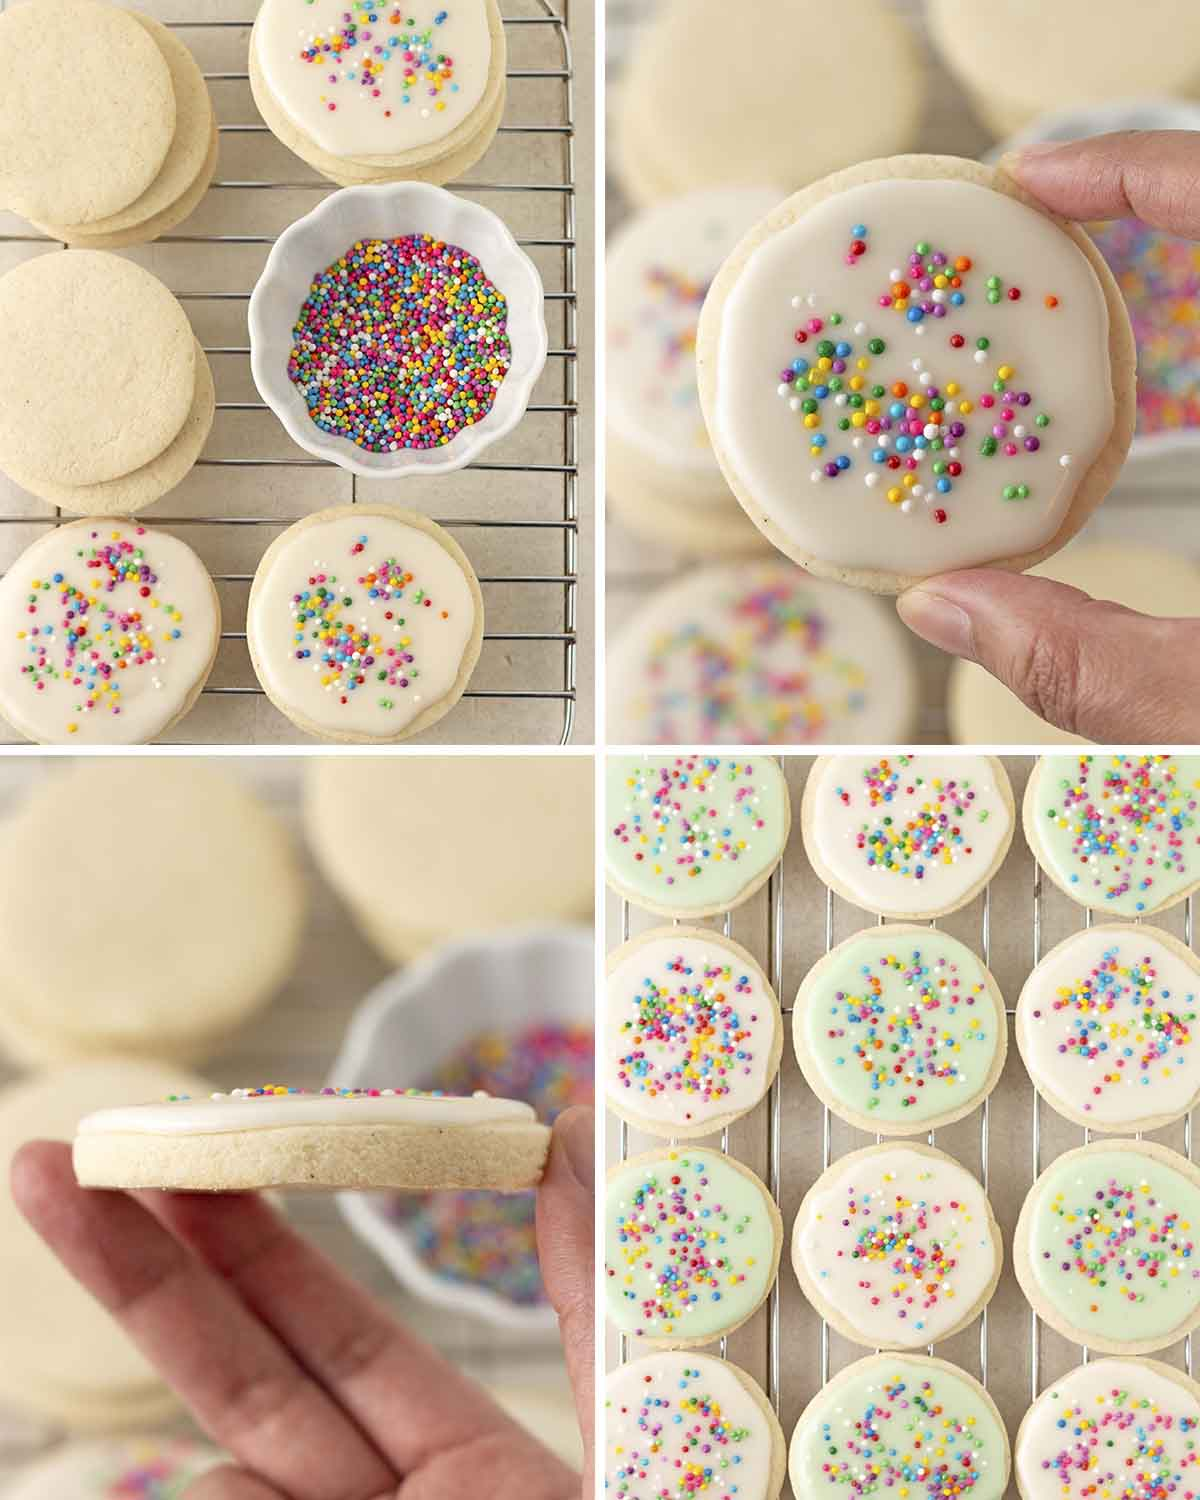 A collage of four images showing the final sequence of steps needed to make dairy-free sugar cookies.